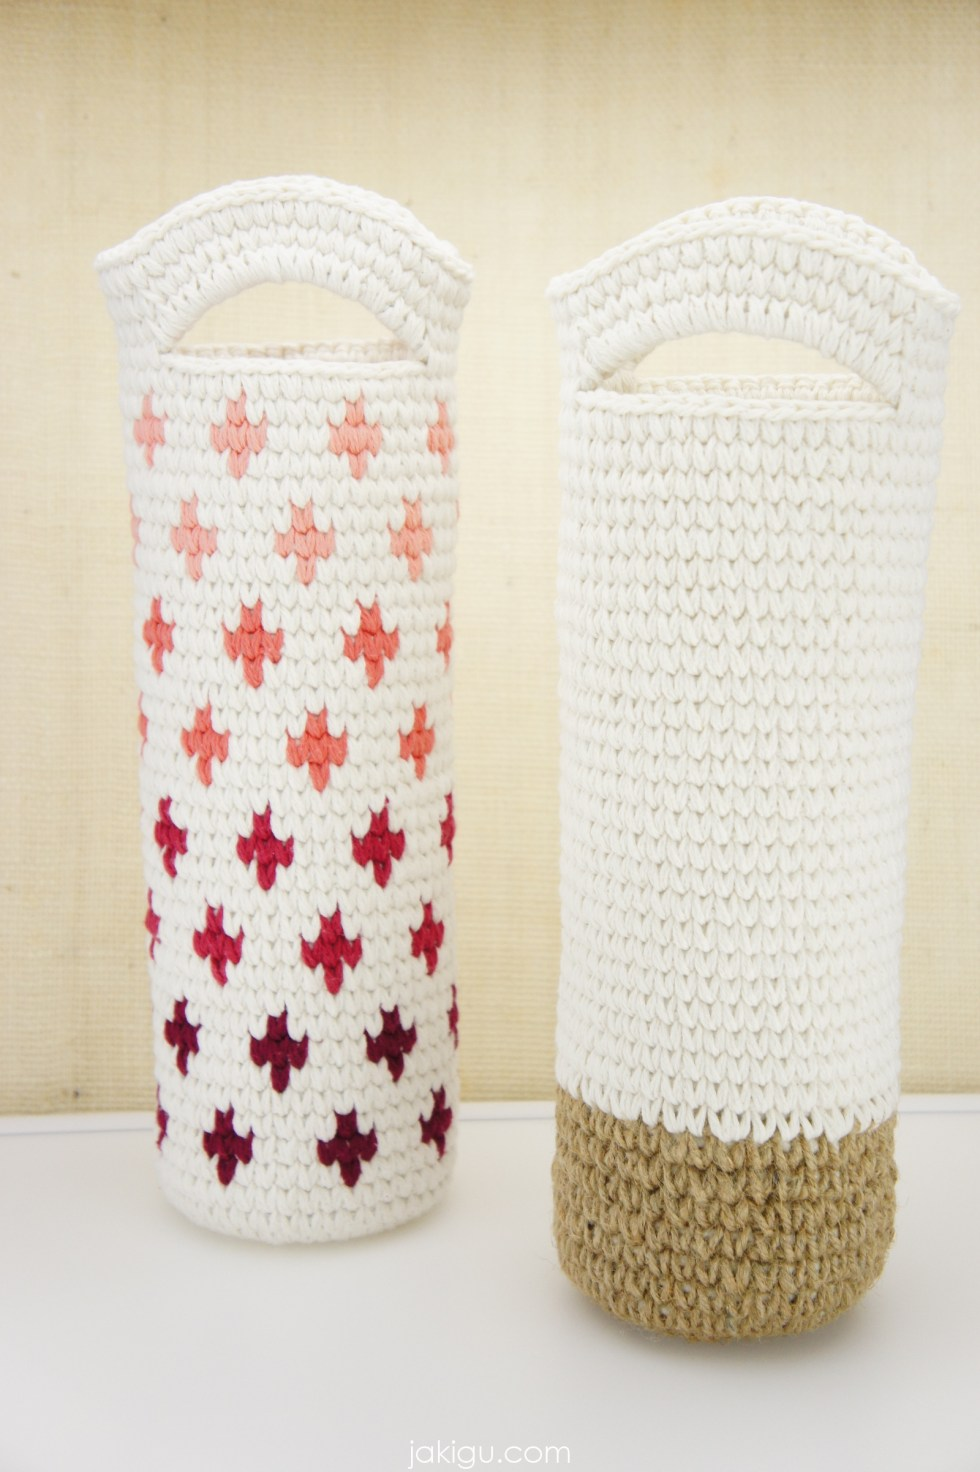 Crochet Wine Bottle Koozies / Cozies by jakigu.com